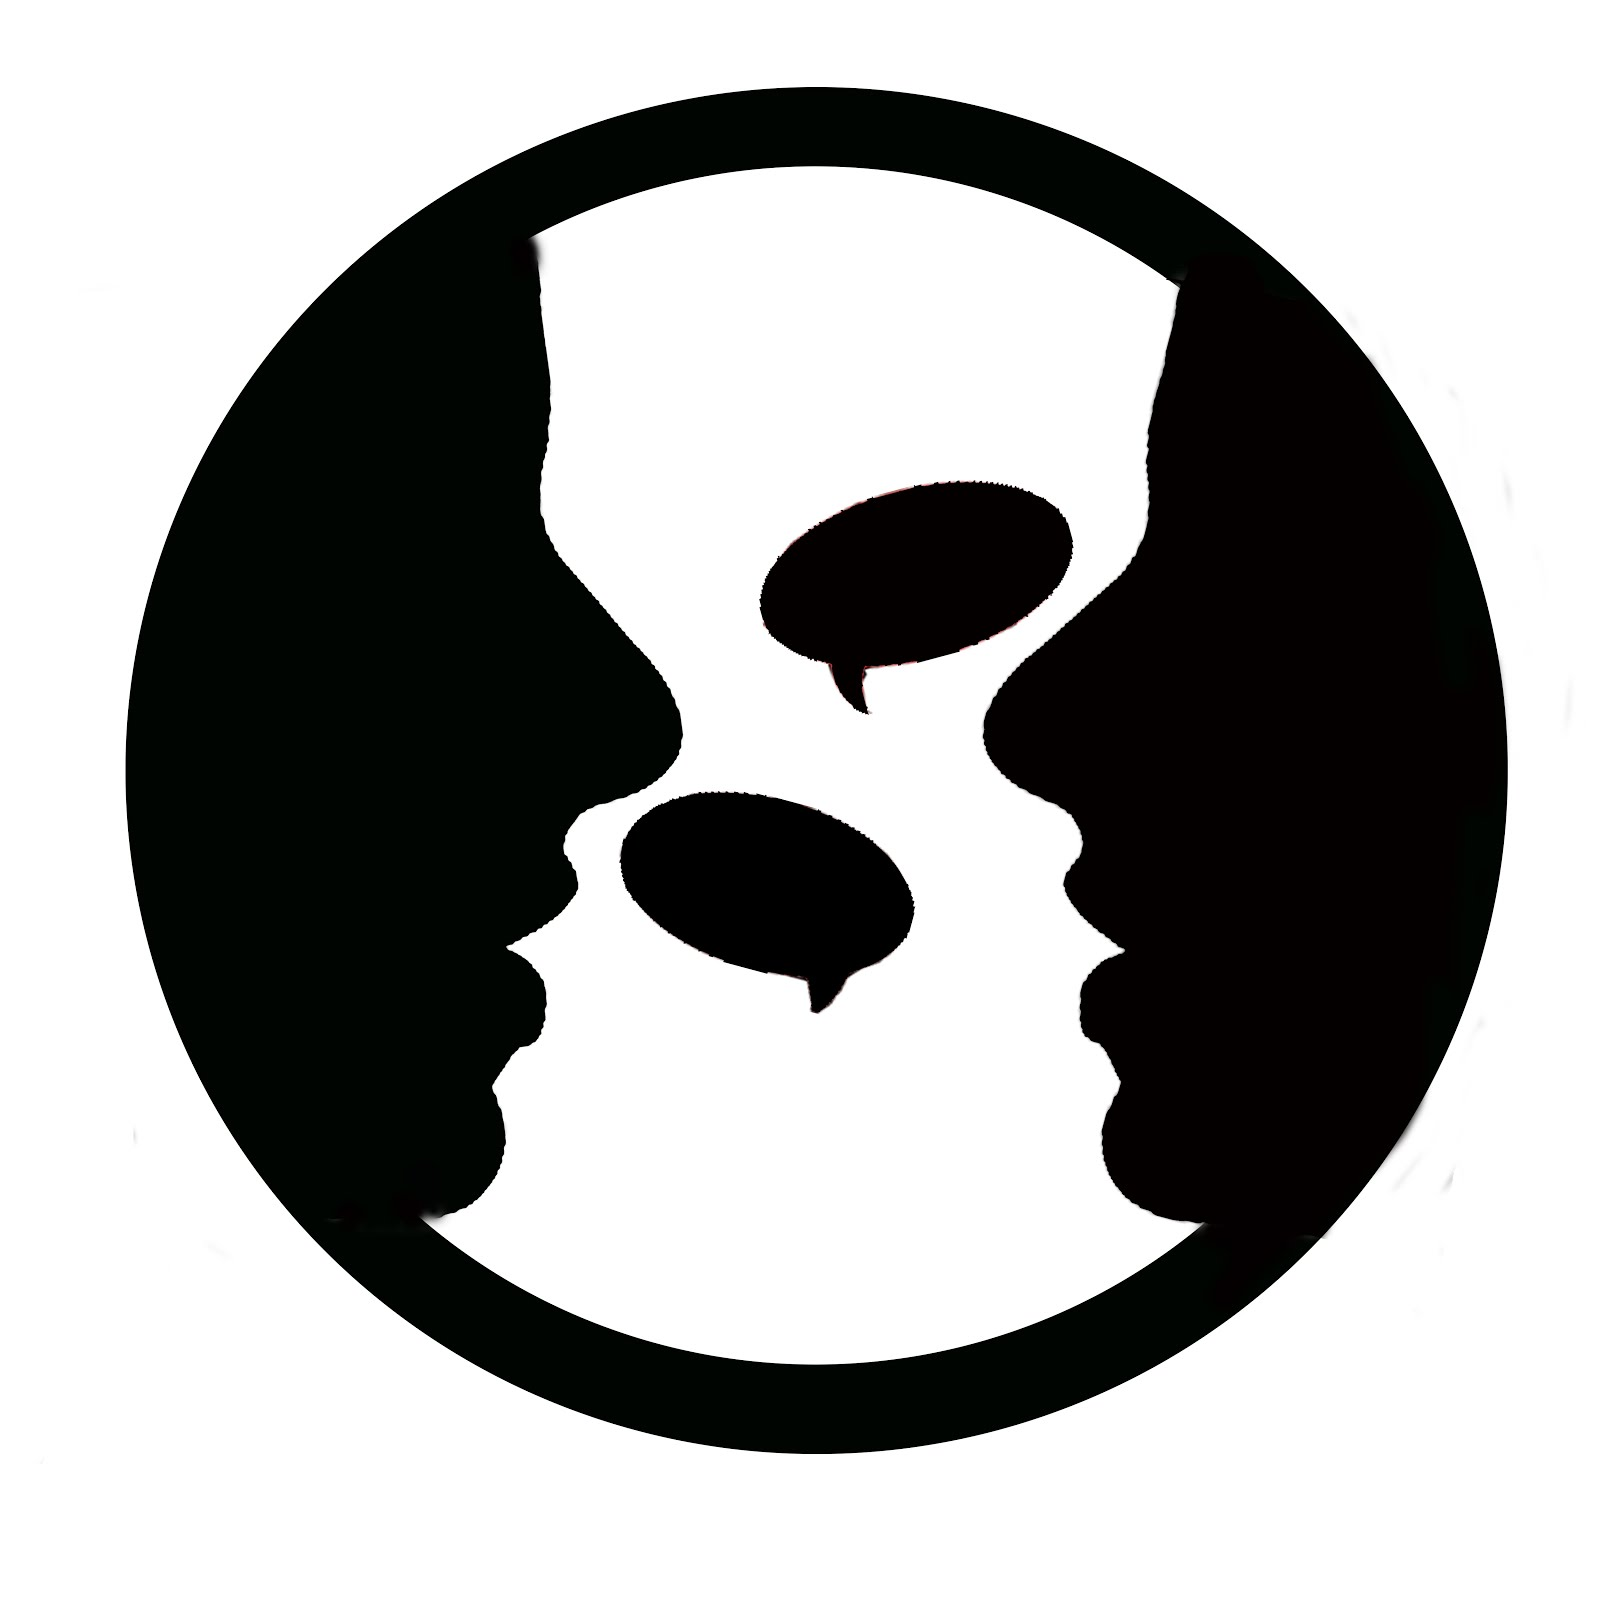 File:Two-people-talking-logo.